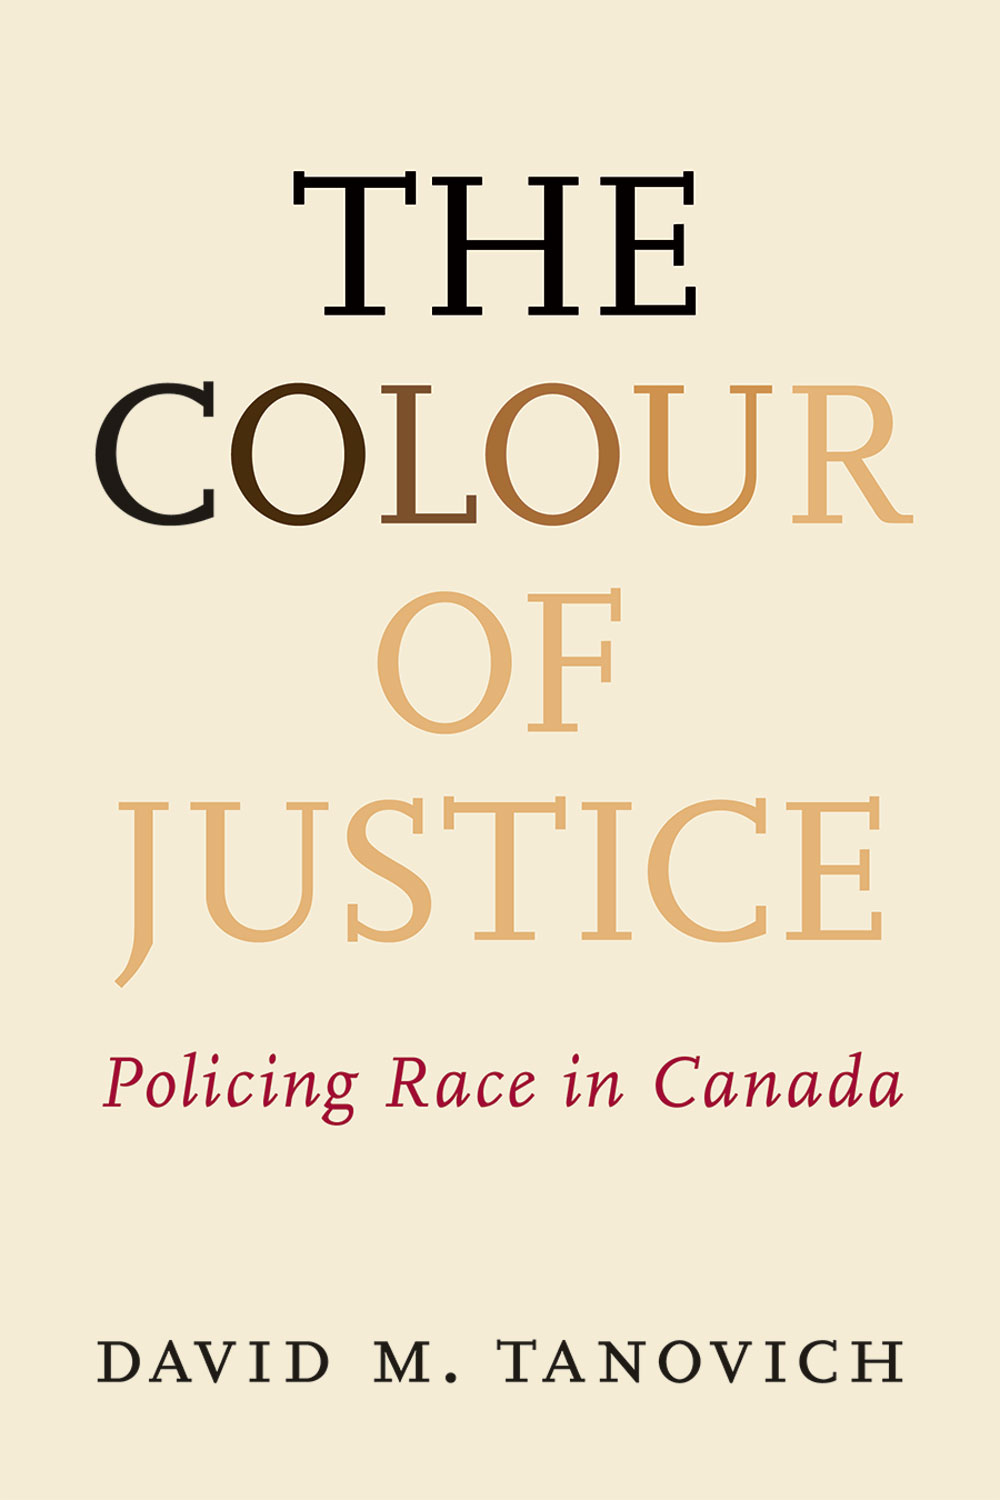 Colour of Justice